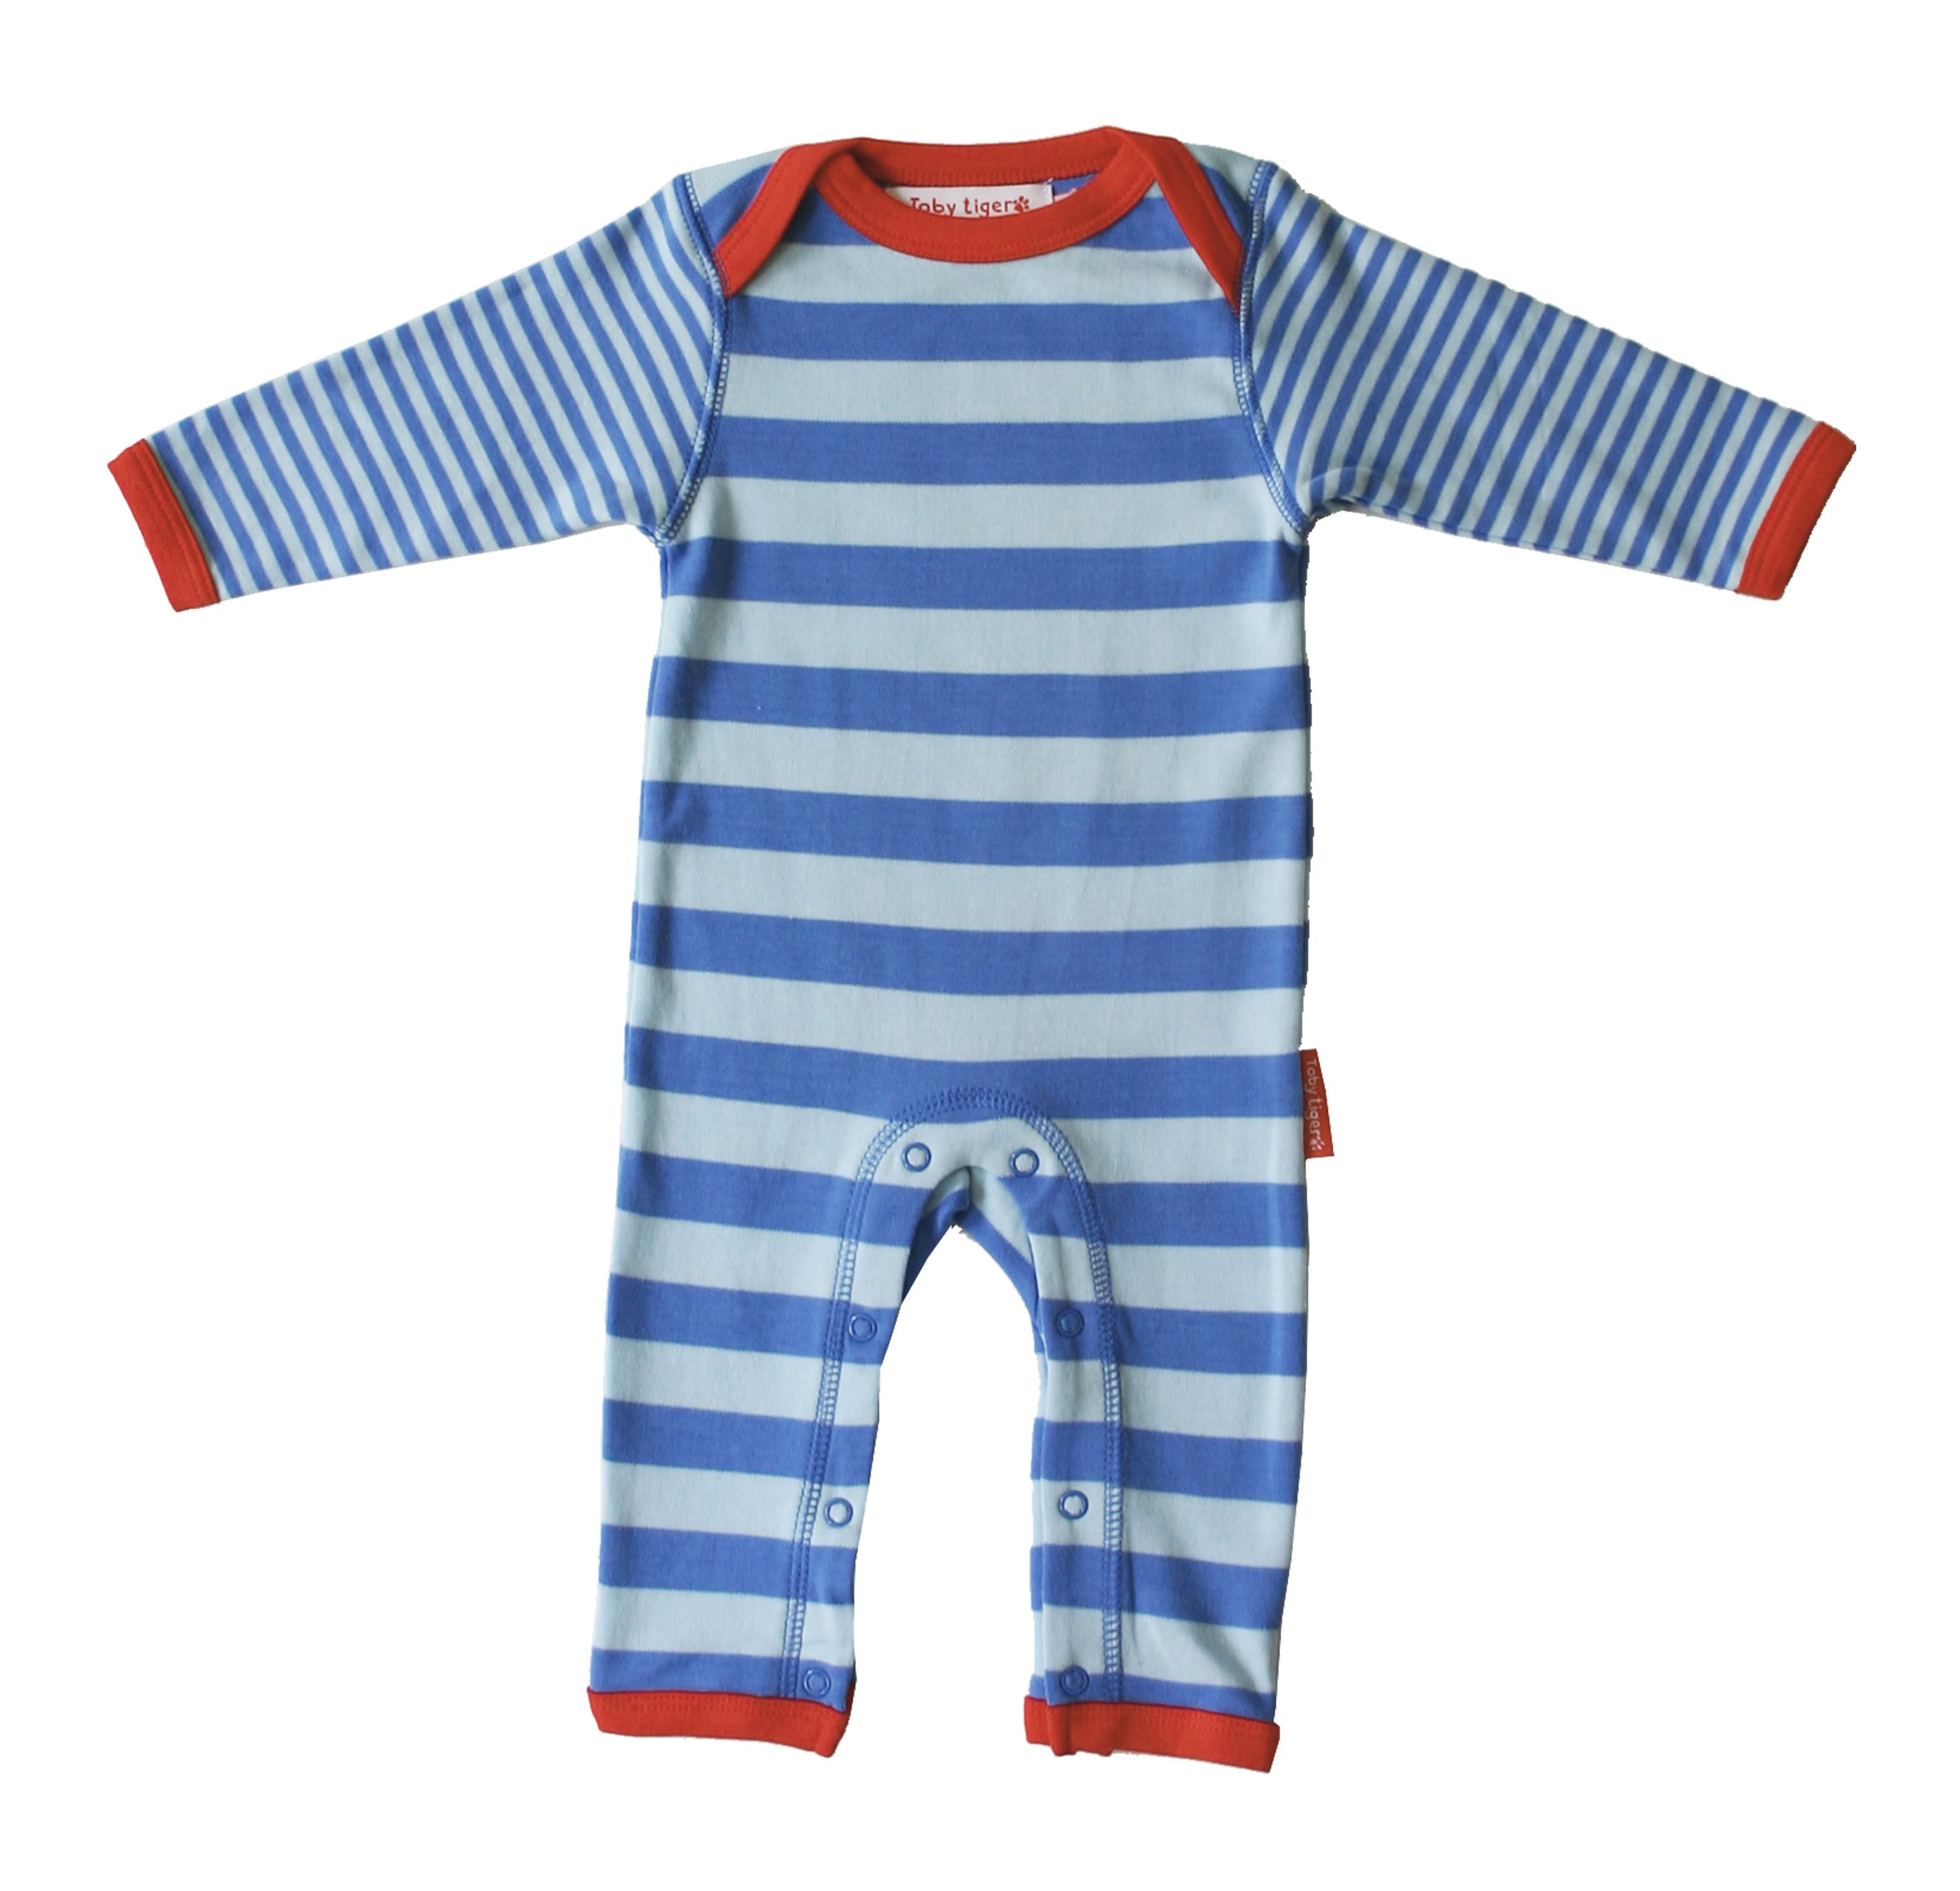 Toby Tiger Baby organic cotton sleepsuit, Blue